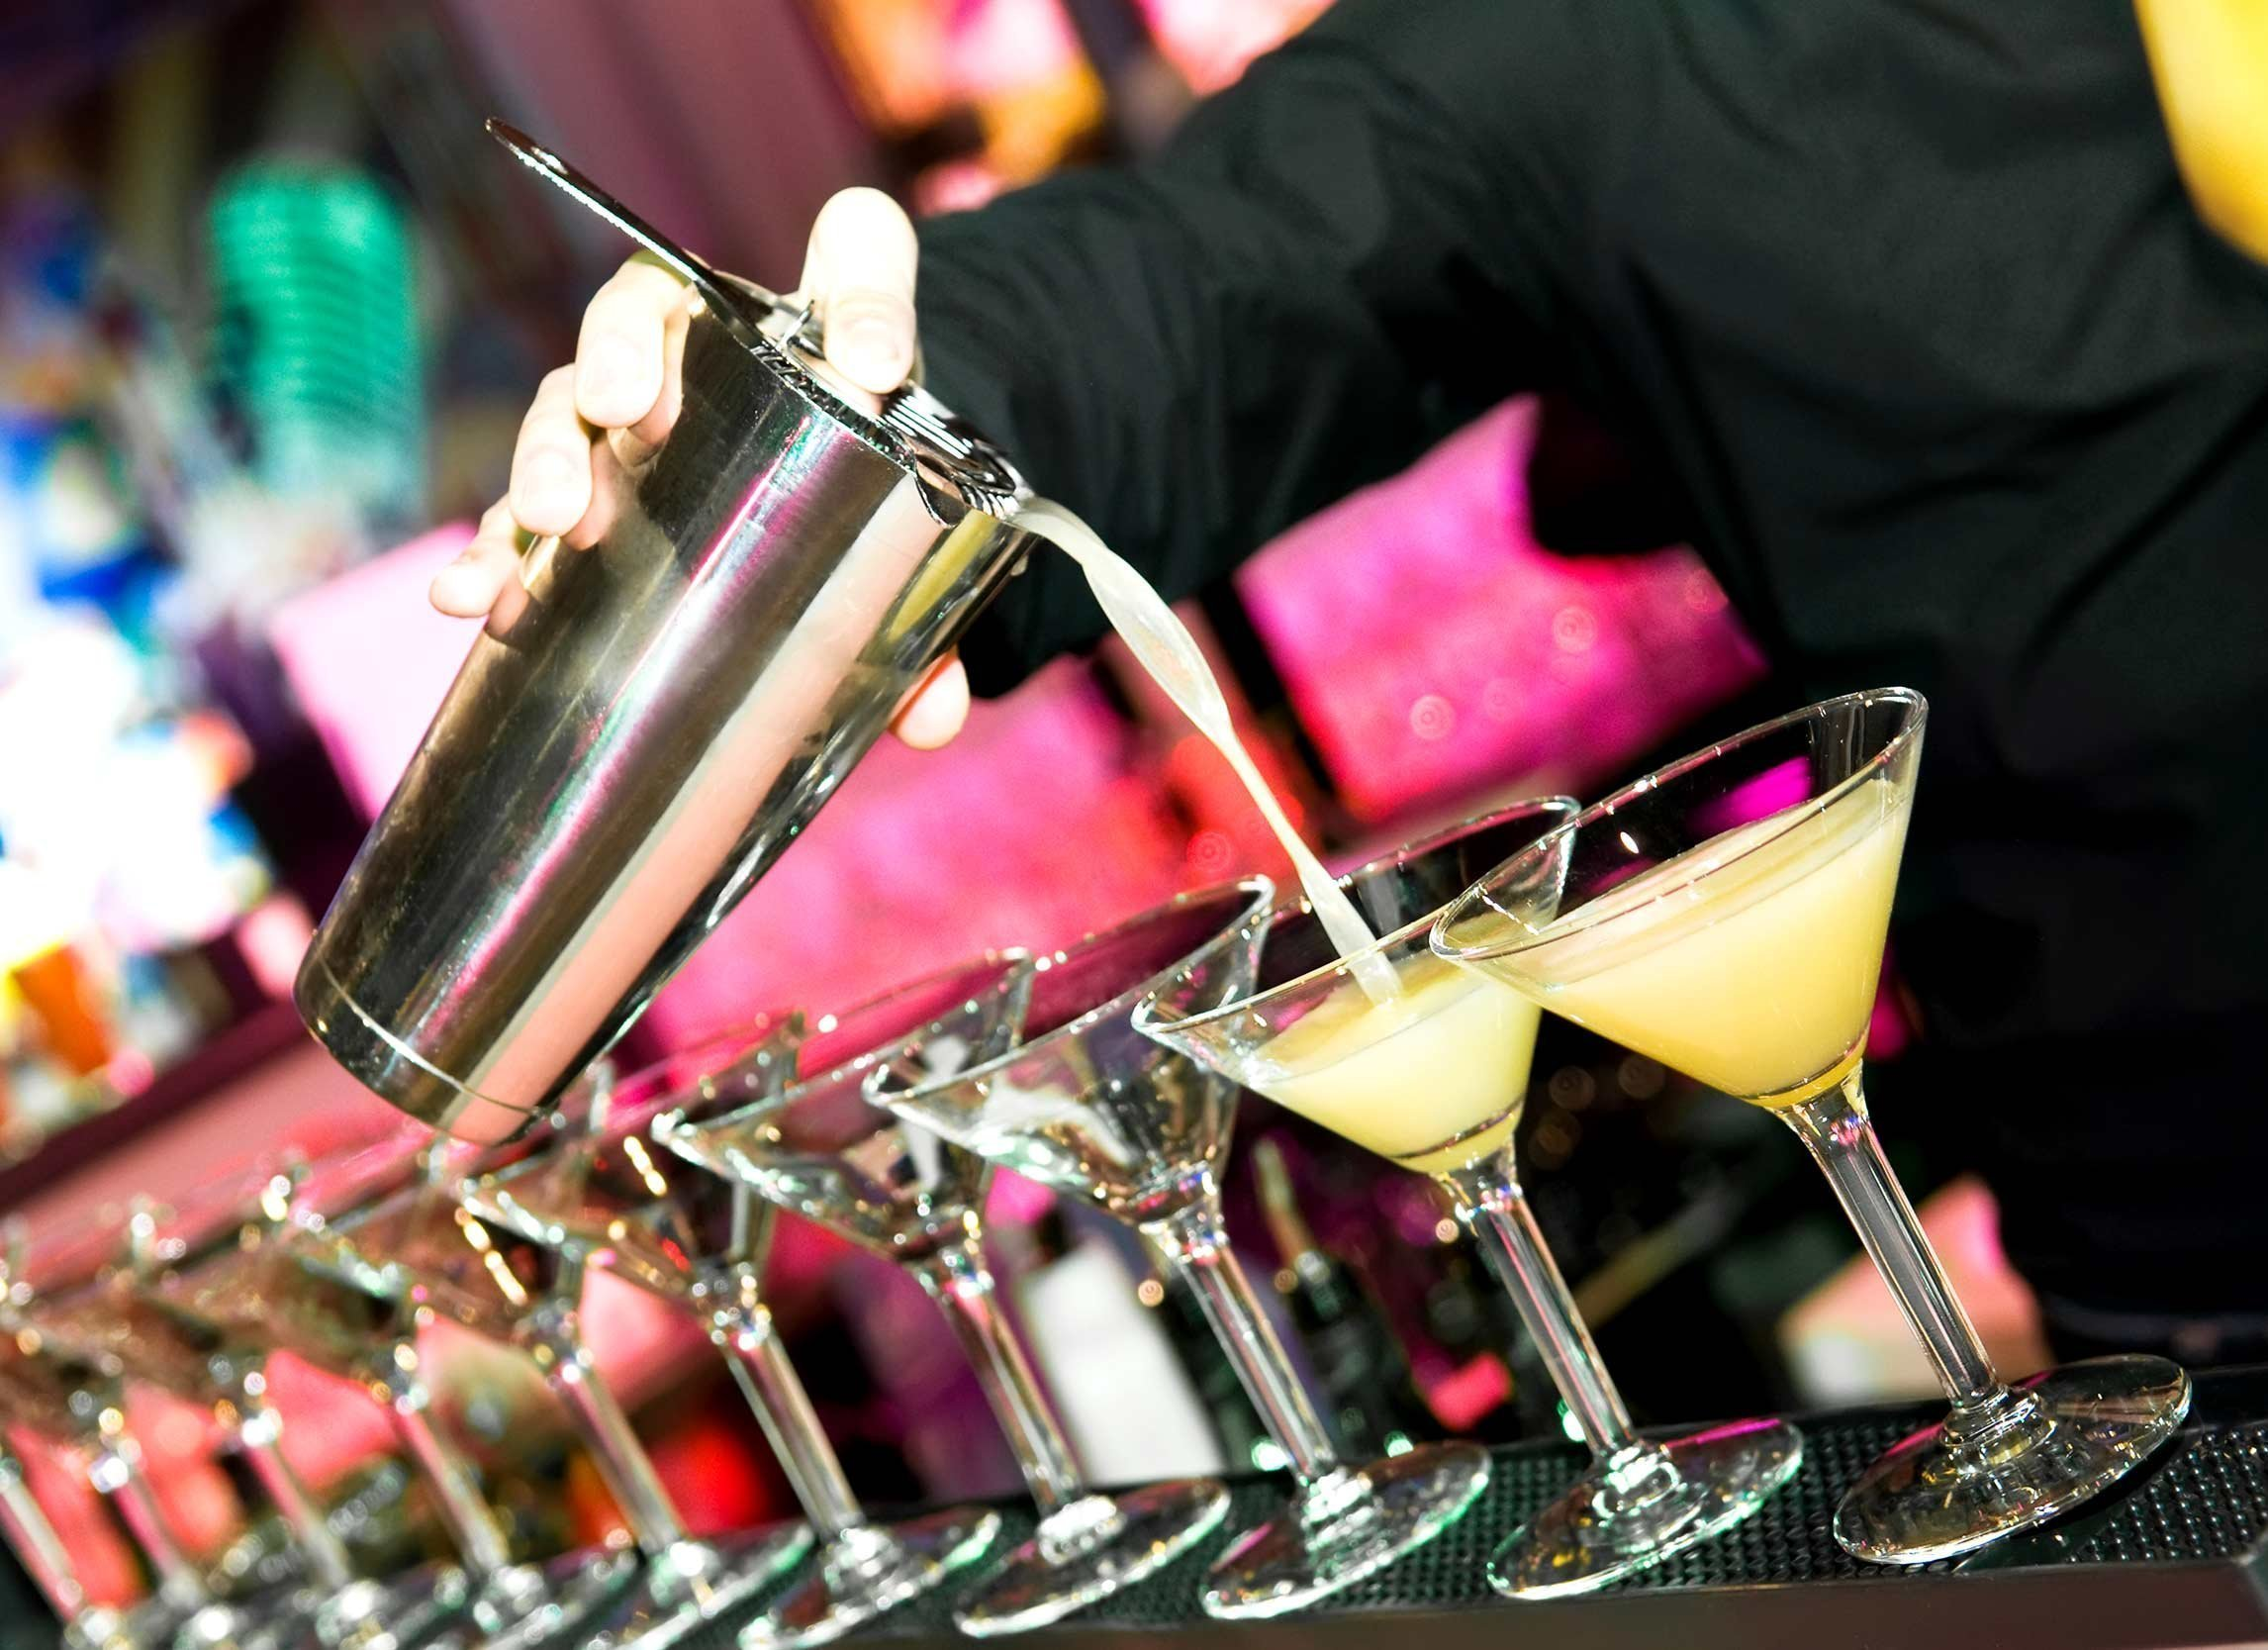 pour martinis in bar